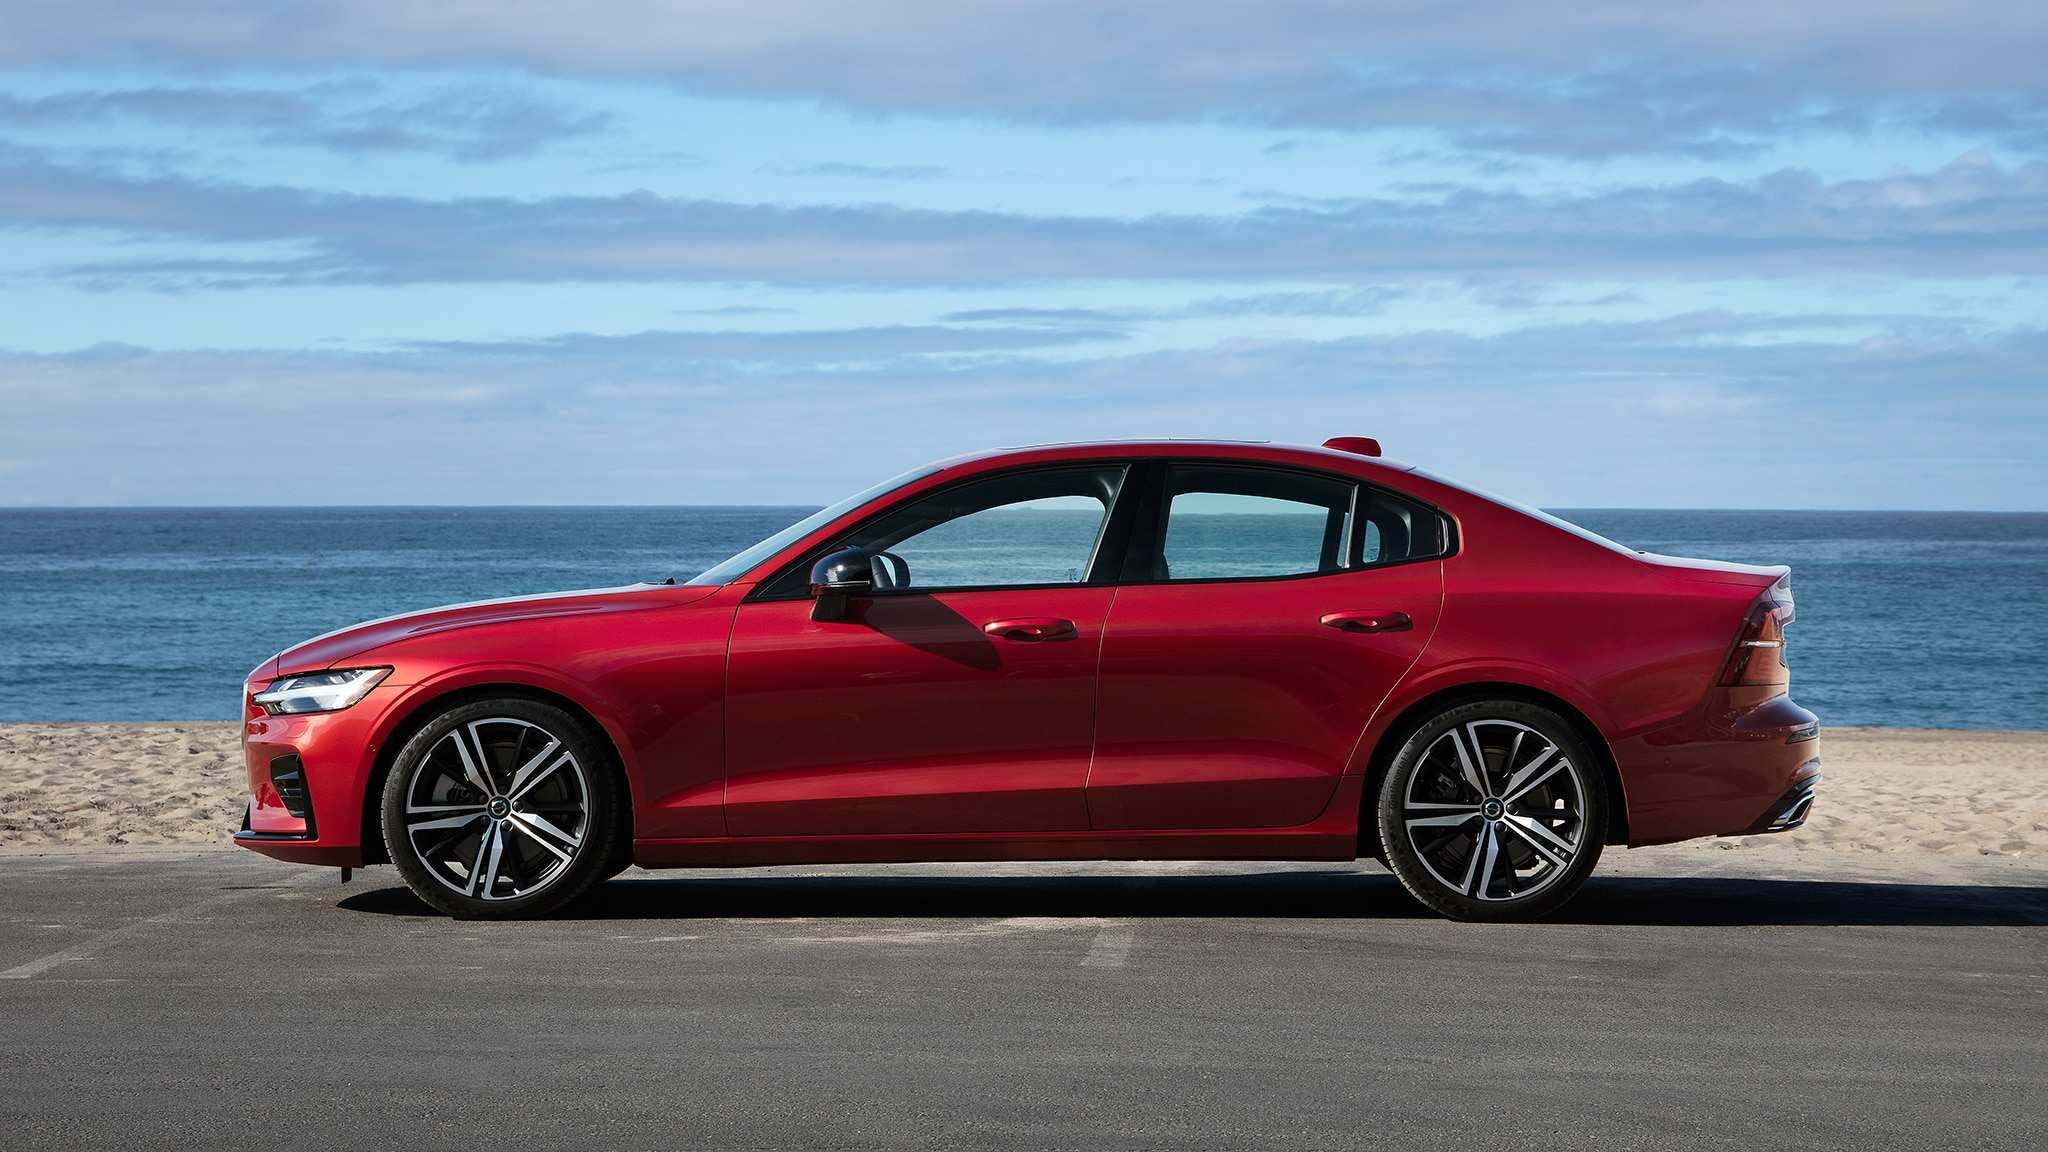 15 Gallery of 2019 Volvo S60 Specs and Review with 2019 Volvo S60